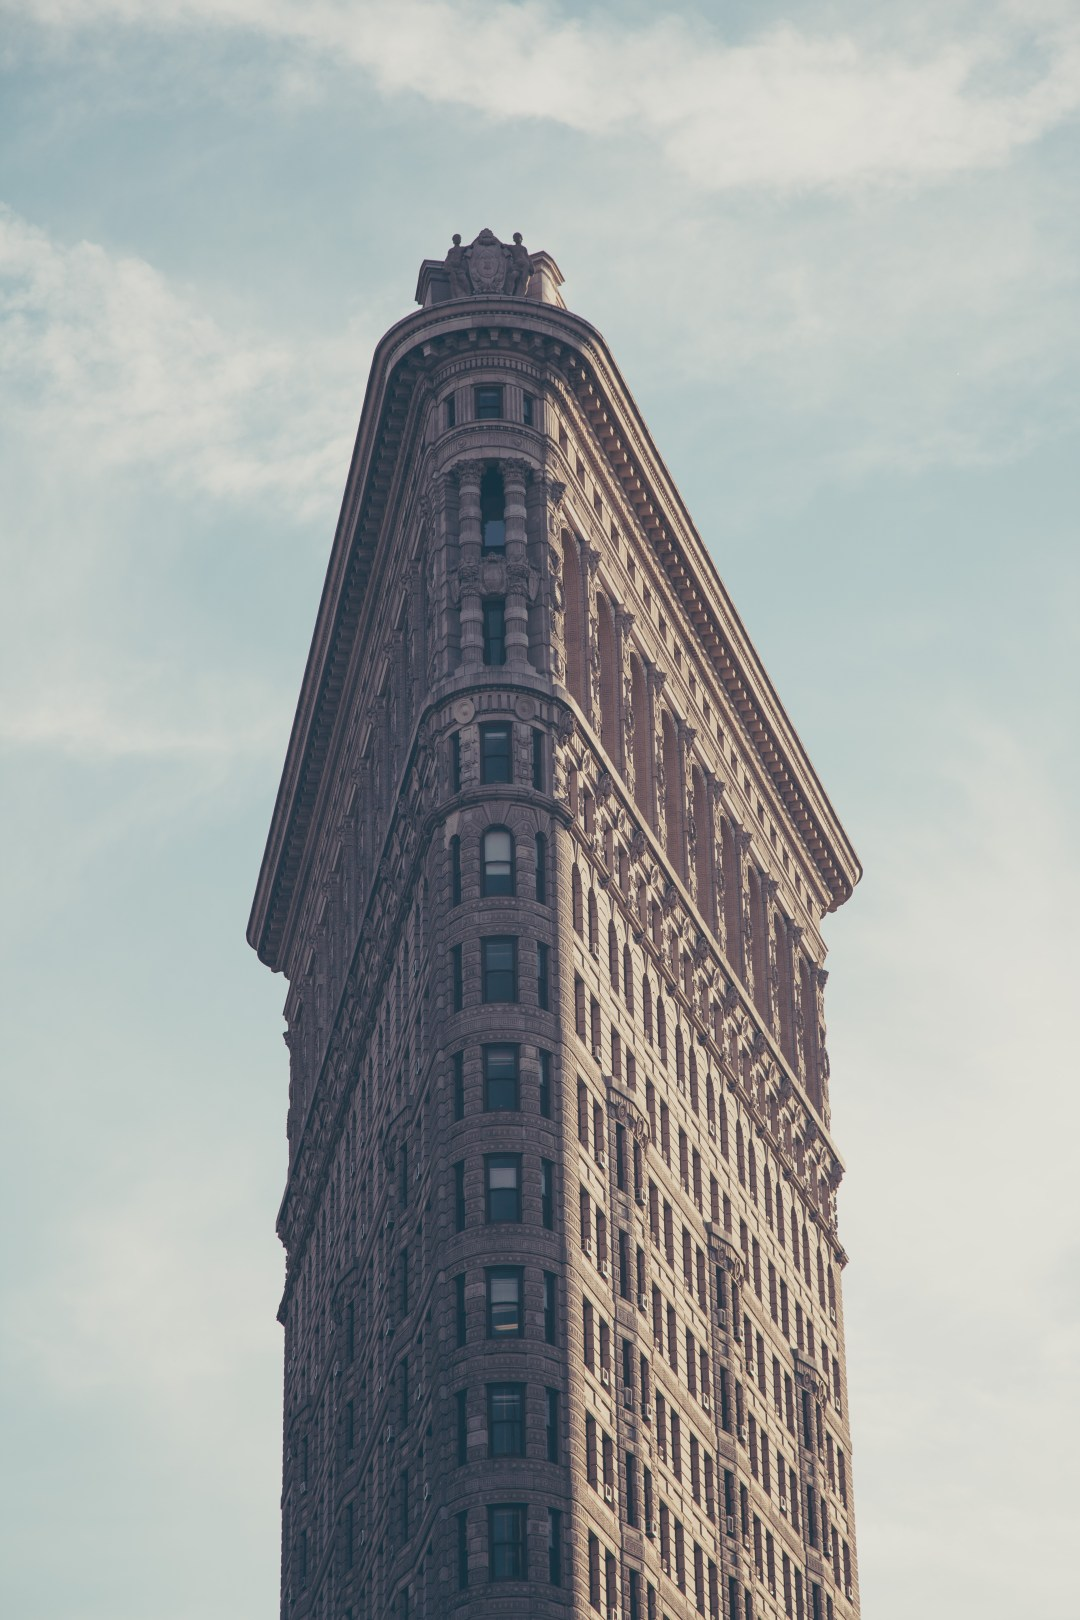 Wallpapers For Free Hd Flatiron Building New York And Skyscraper Hd Photo By